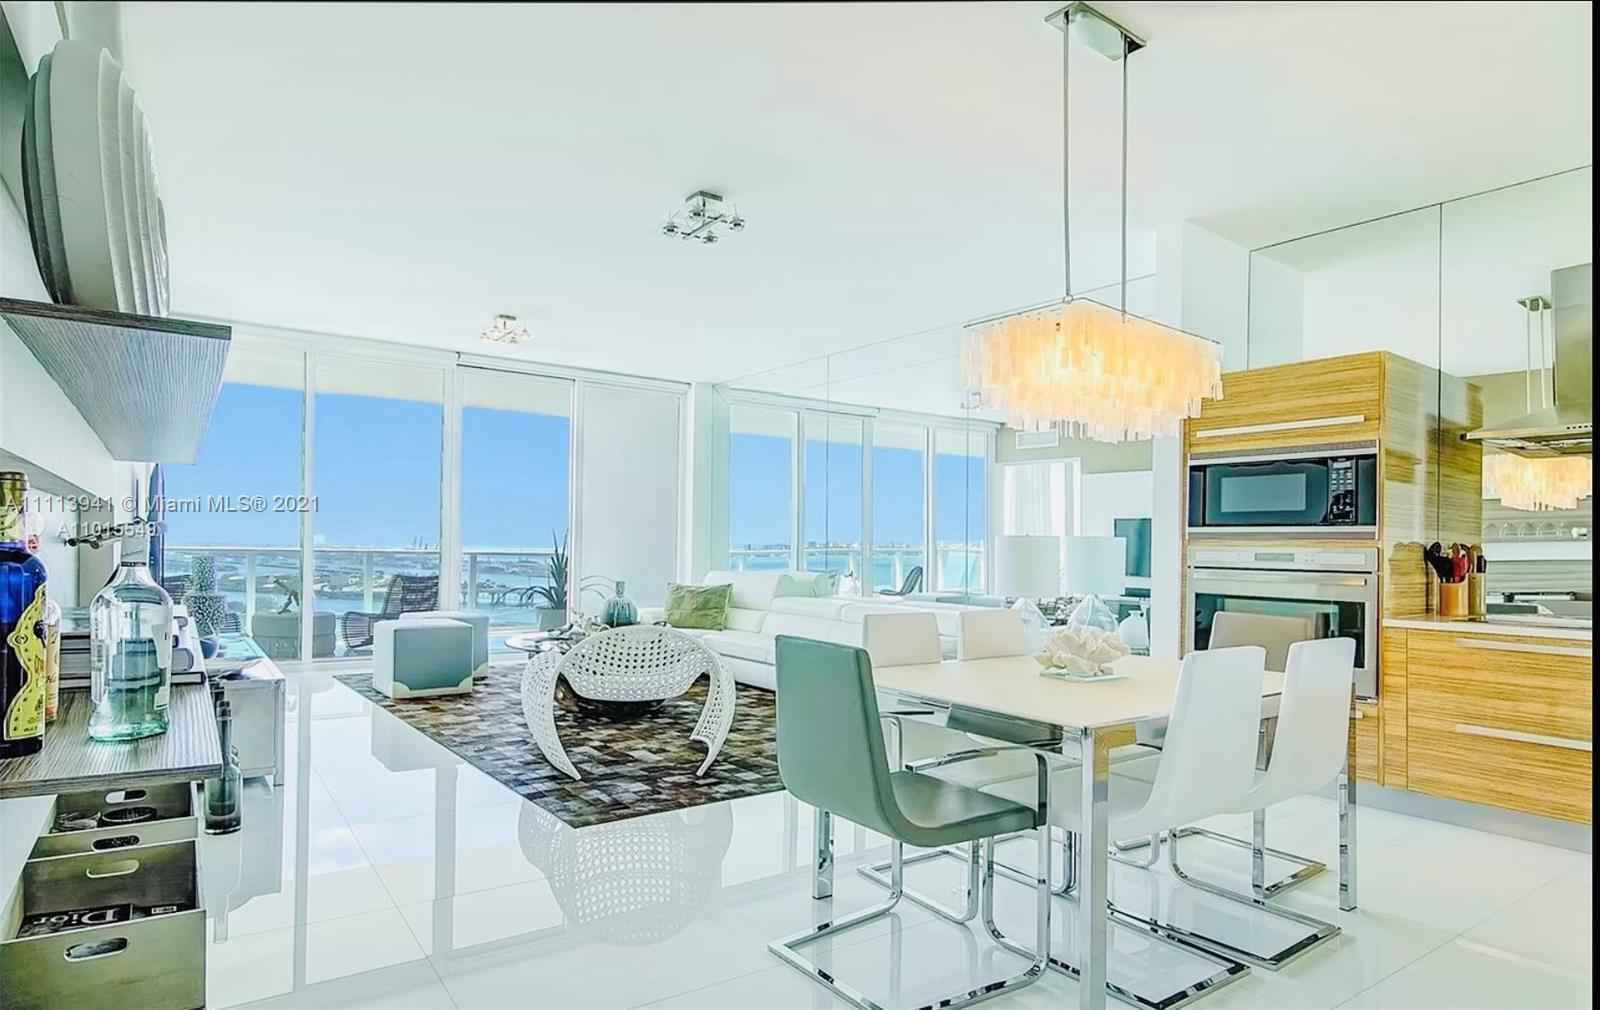 THIS GORGEOUS 1 BEDROOM &DEN CONVERTED INTO 2ND BEDROOM/2.5 BATH CONDO IS FULLY FURNISHED BY ARTEFAC